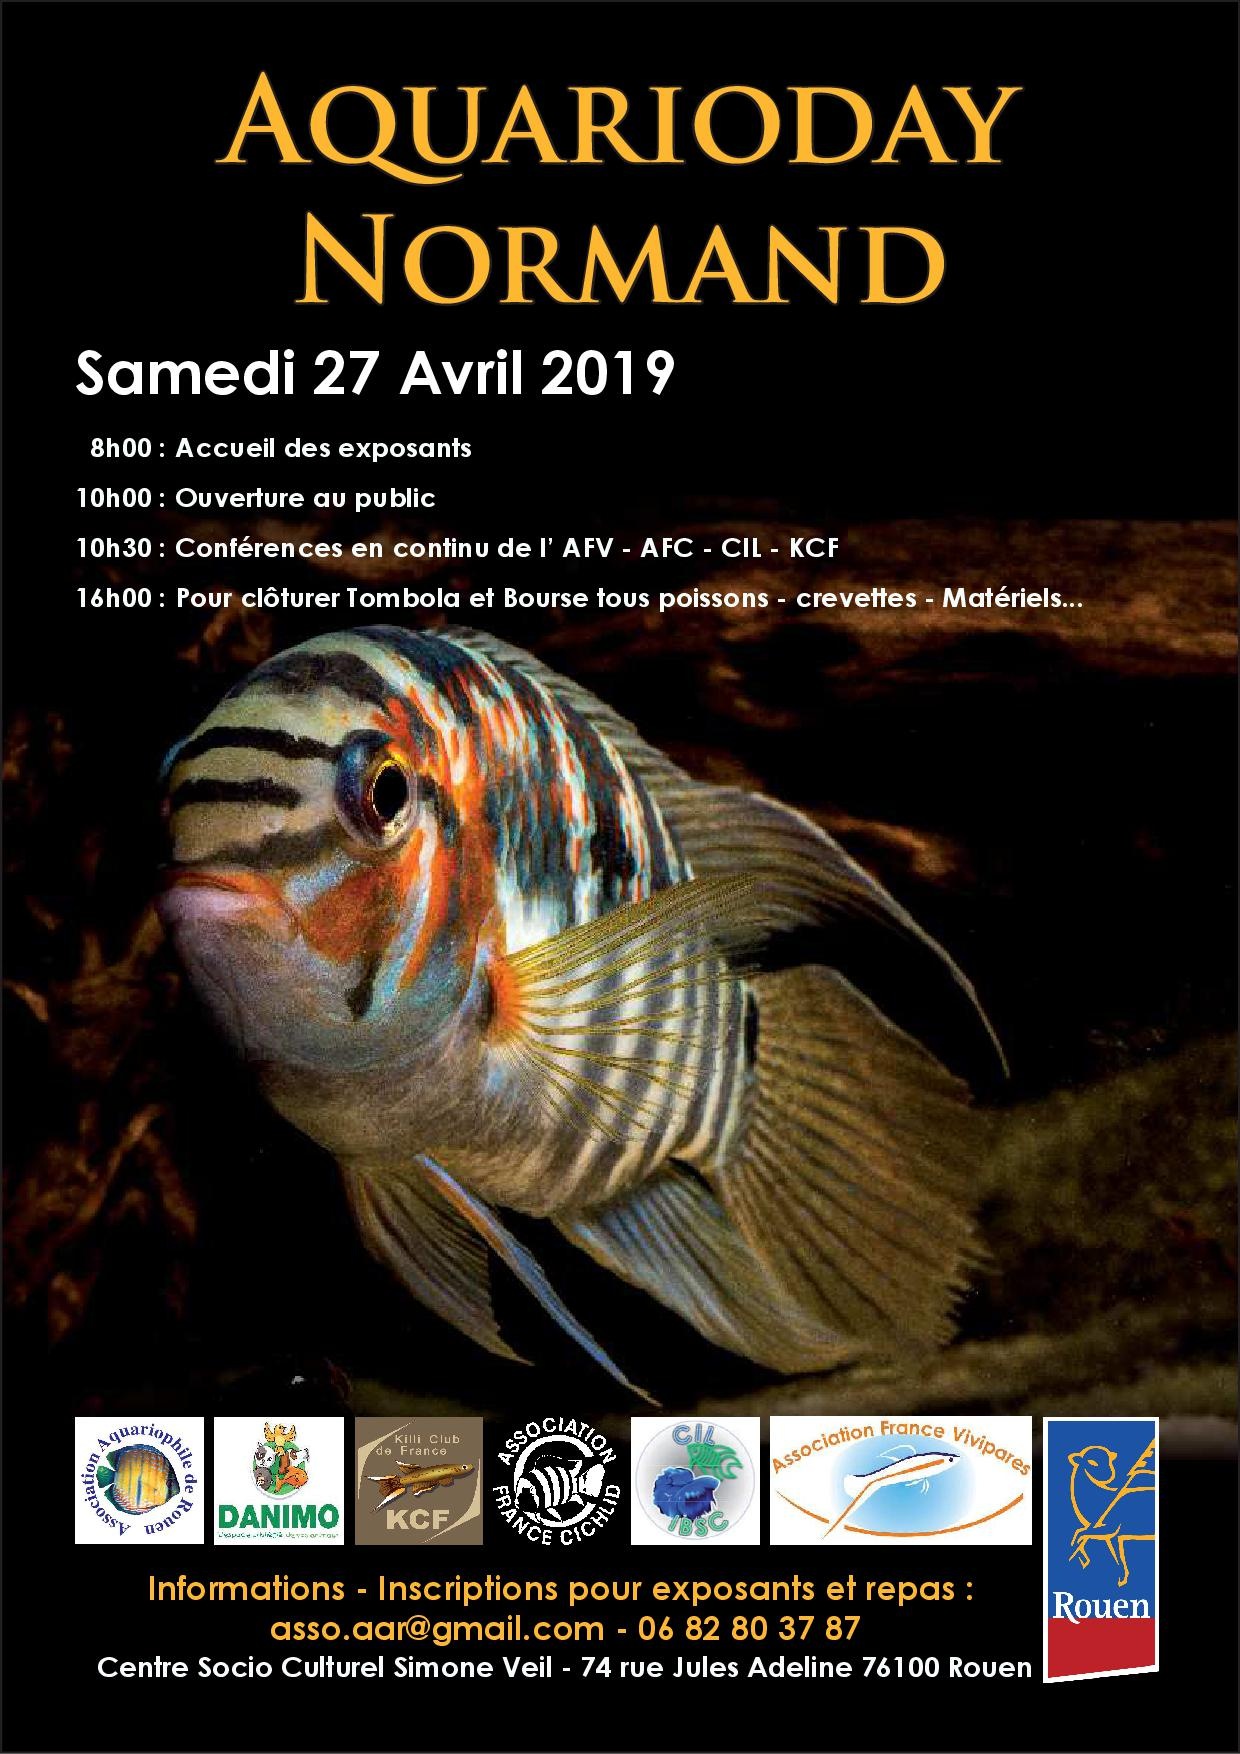 AquarioDay Normand Samedi 27 Avril 2019 Aar_2712